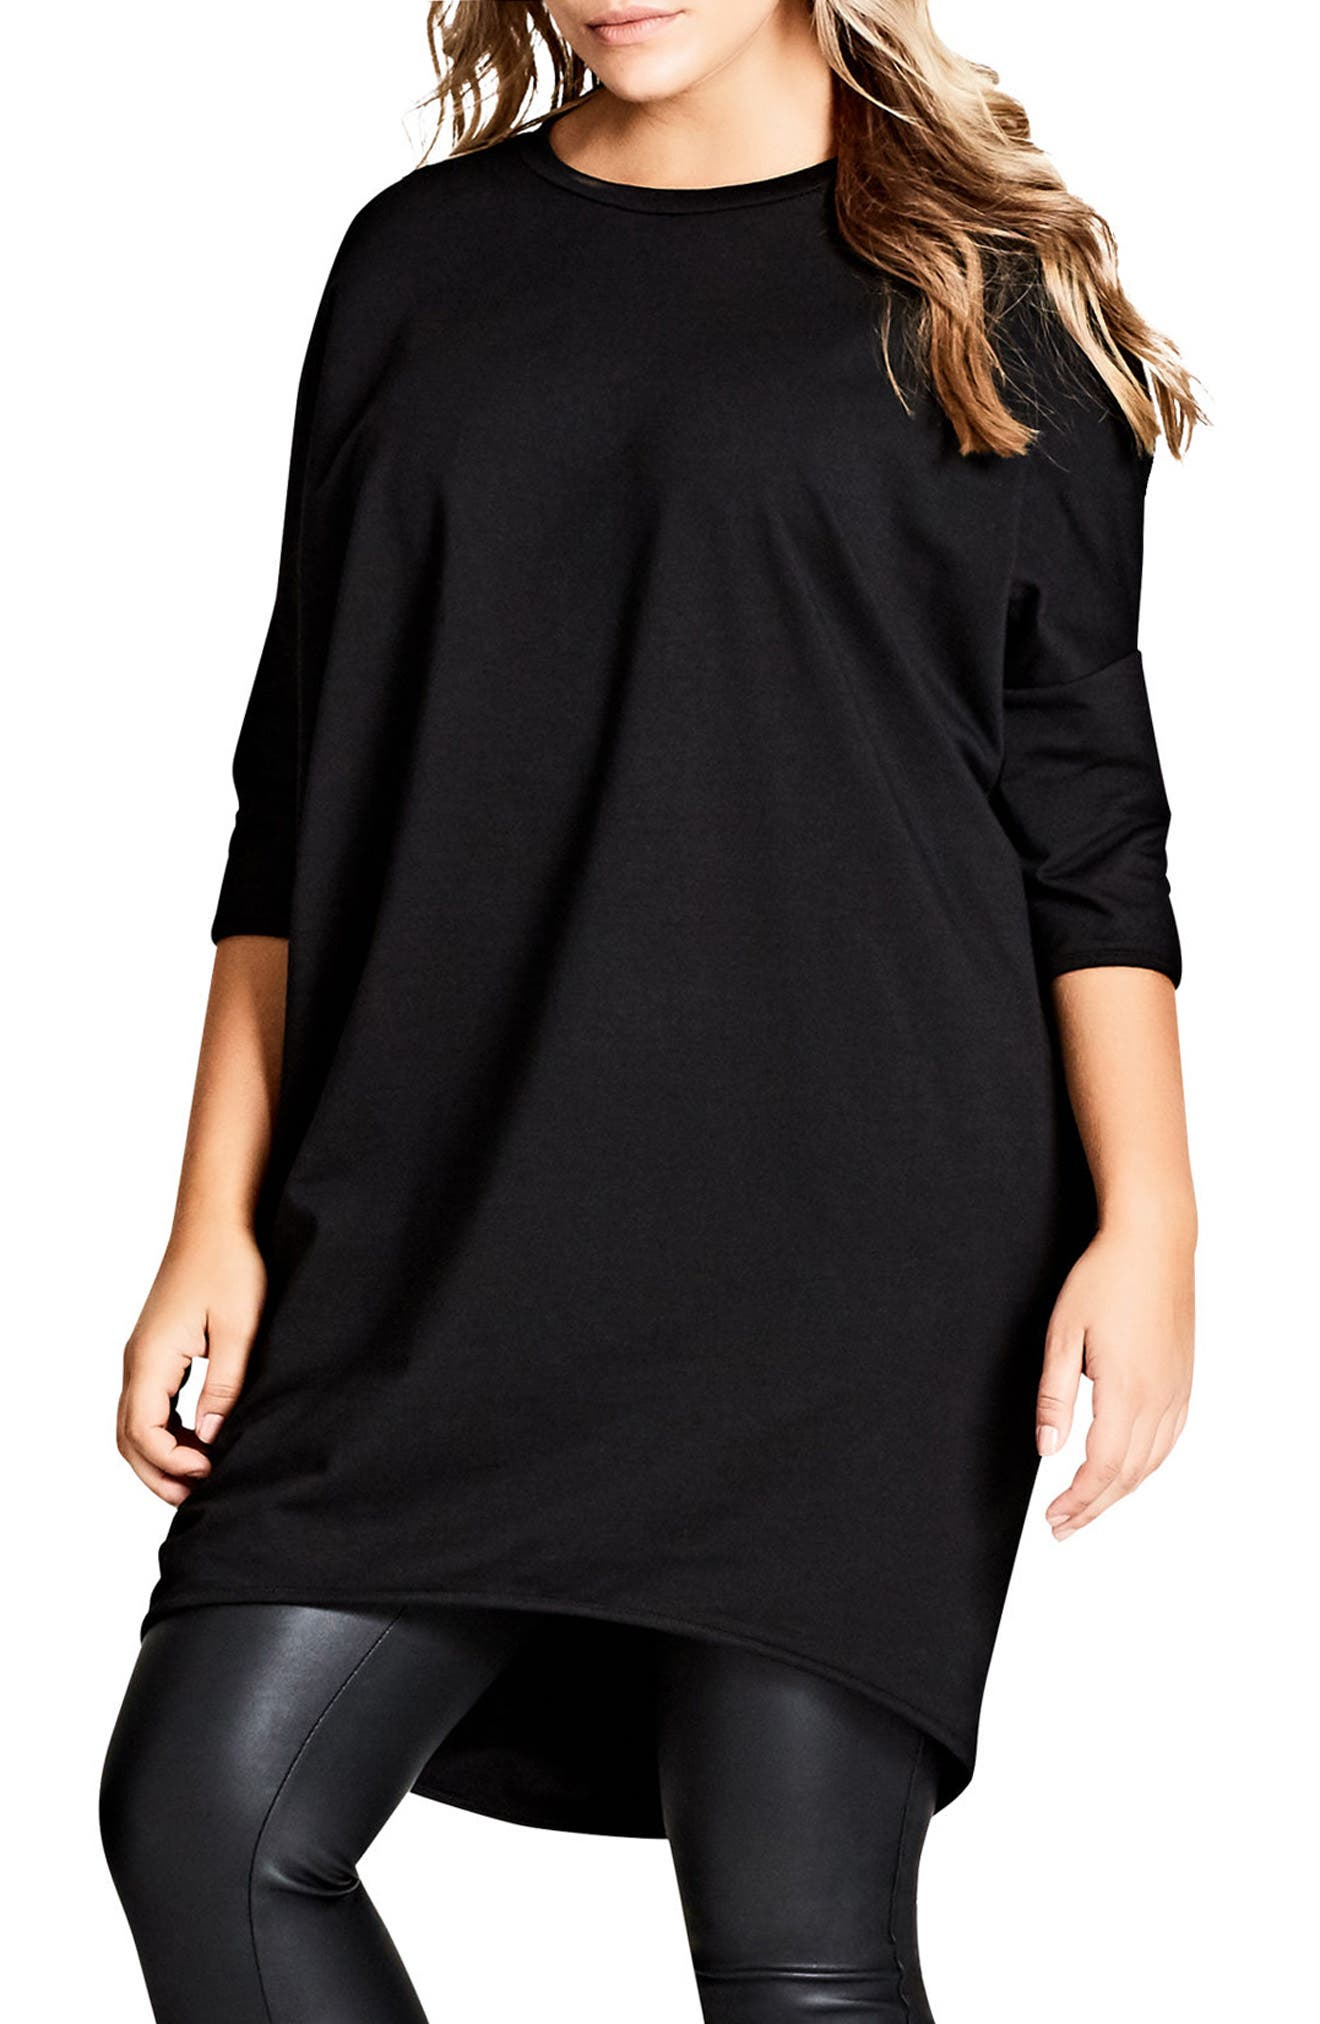 Alternate Image 1 Selected - City Chic Oversize Knit Tee (Plus Size)